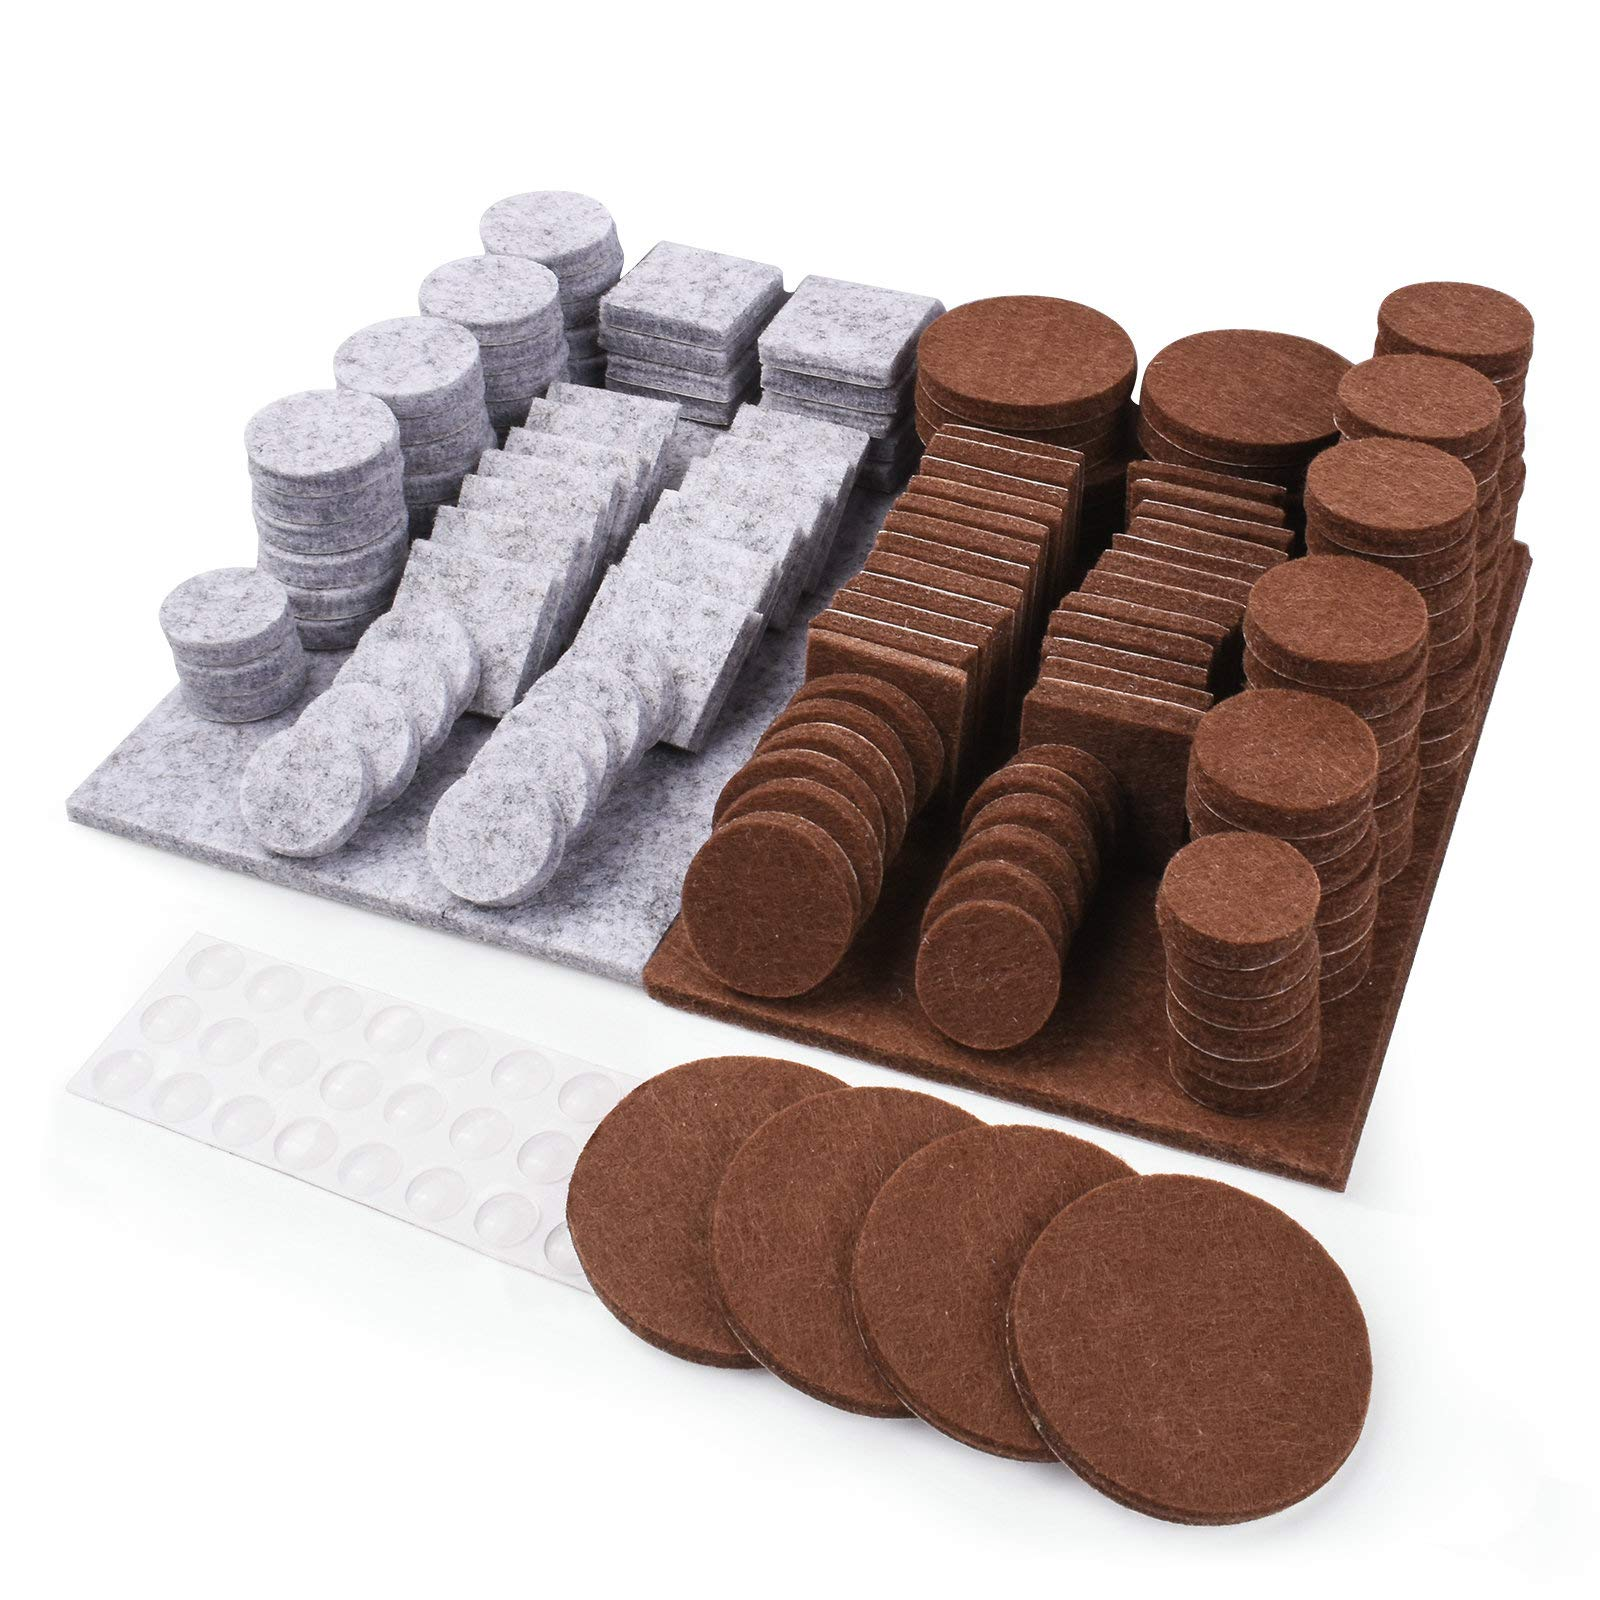 Fairup Furniture Pads 192 Pieces Non Slip Felt Furniture Pads on Hardwood Floors 0.2 inch Thick with 30 Clear Rubber Bumpers Self-Adhesive Floor Protectors Brown and Gray Felt 1 inch 2 inches